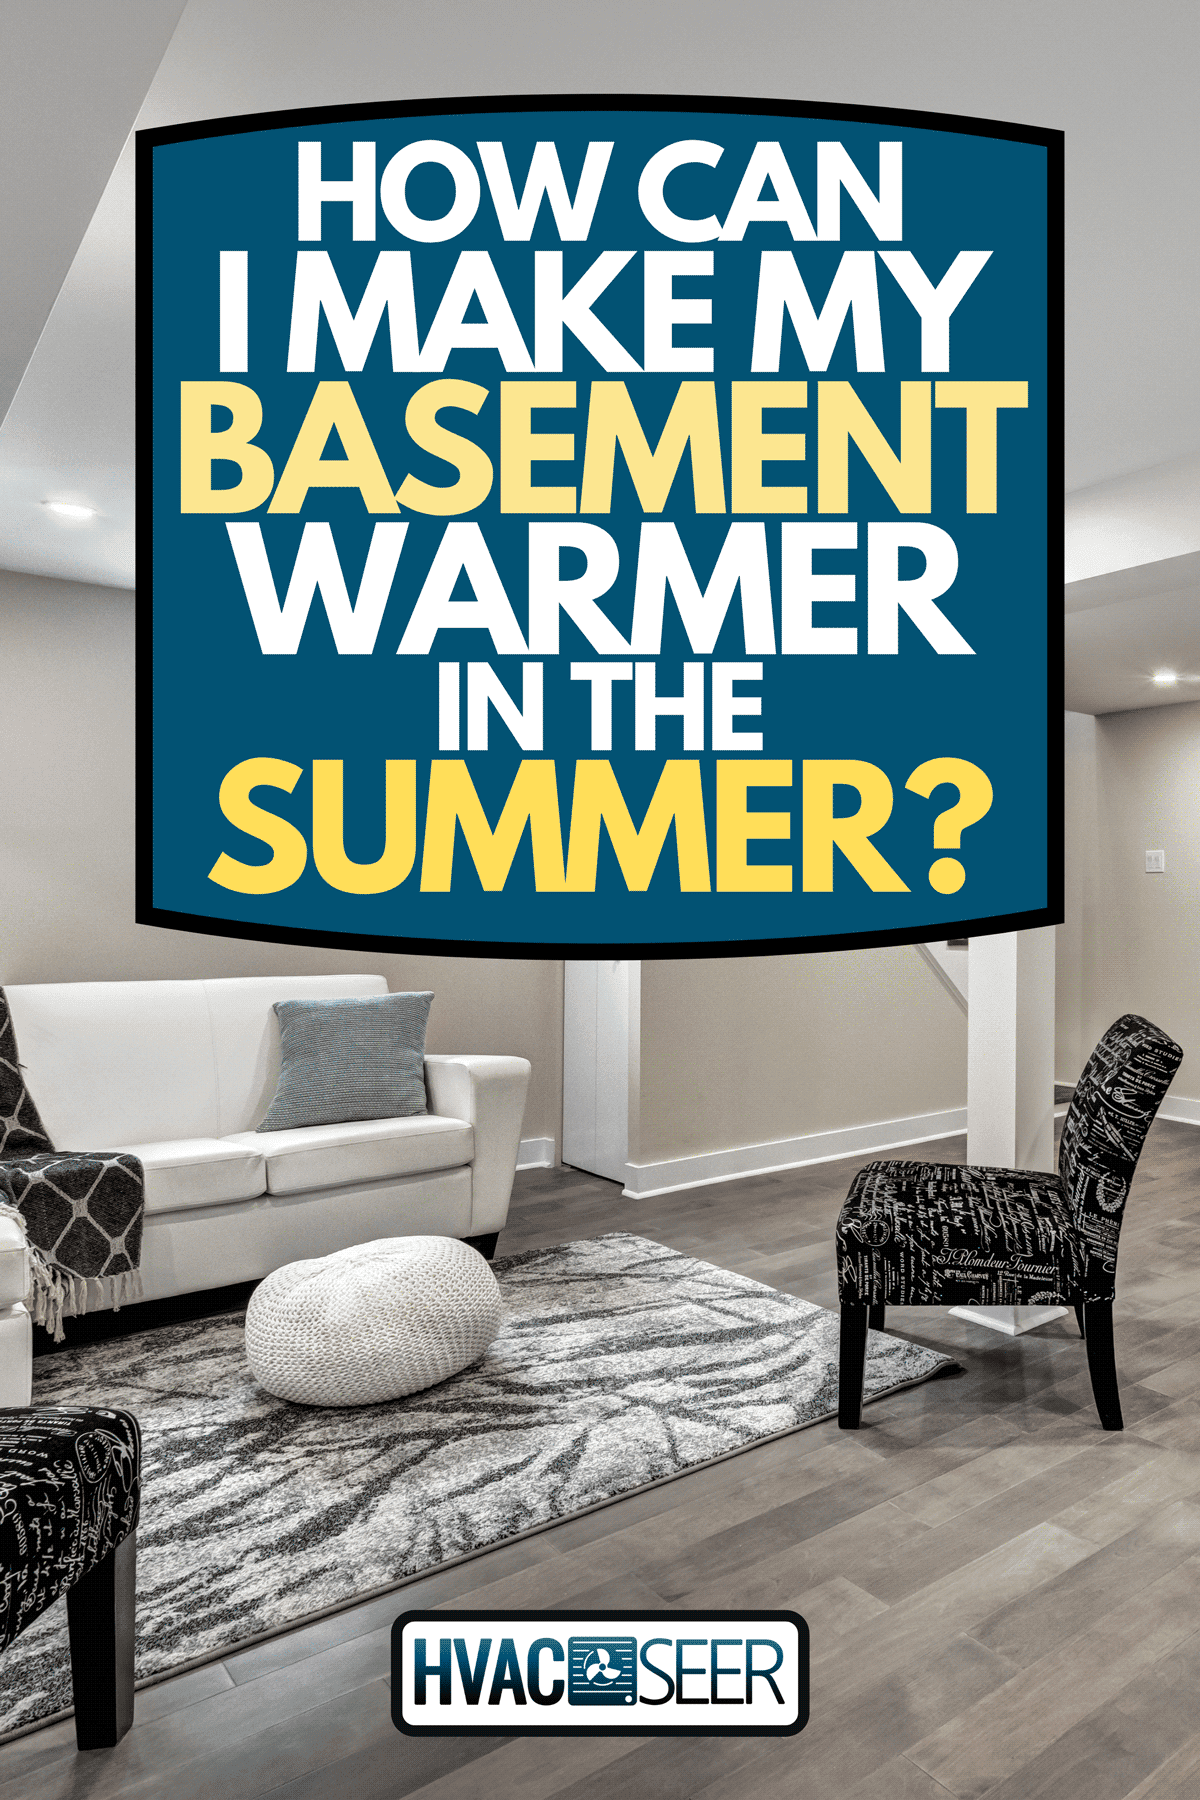 A recently renovated basement of a home, How Can I Make My Basement Warmer In The Summer?